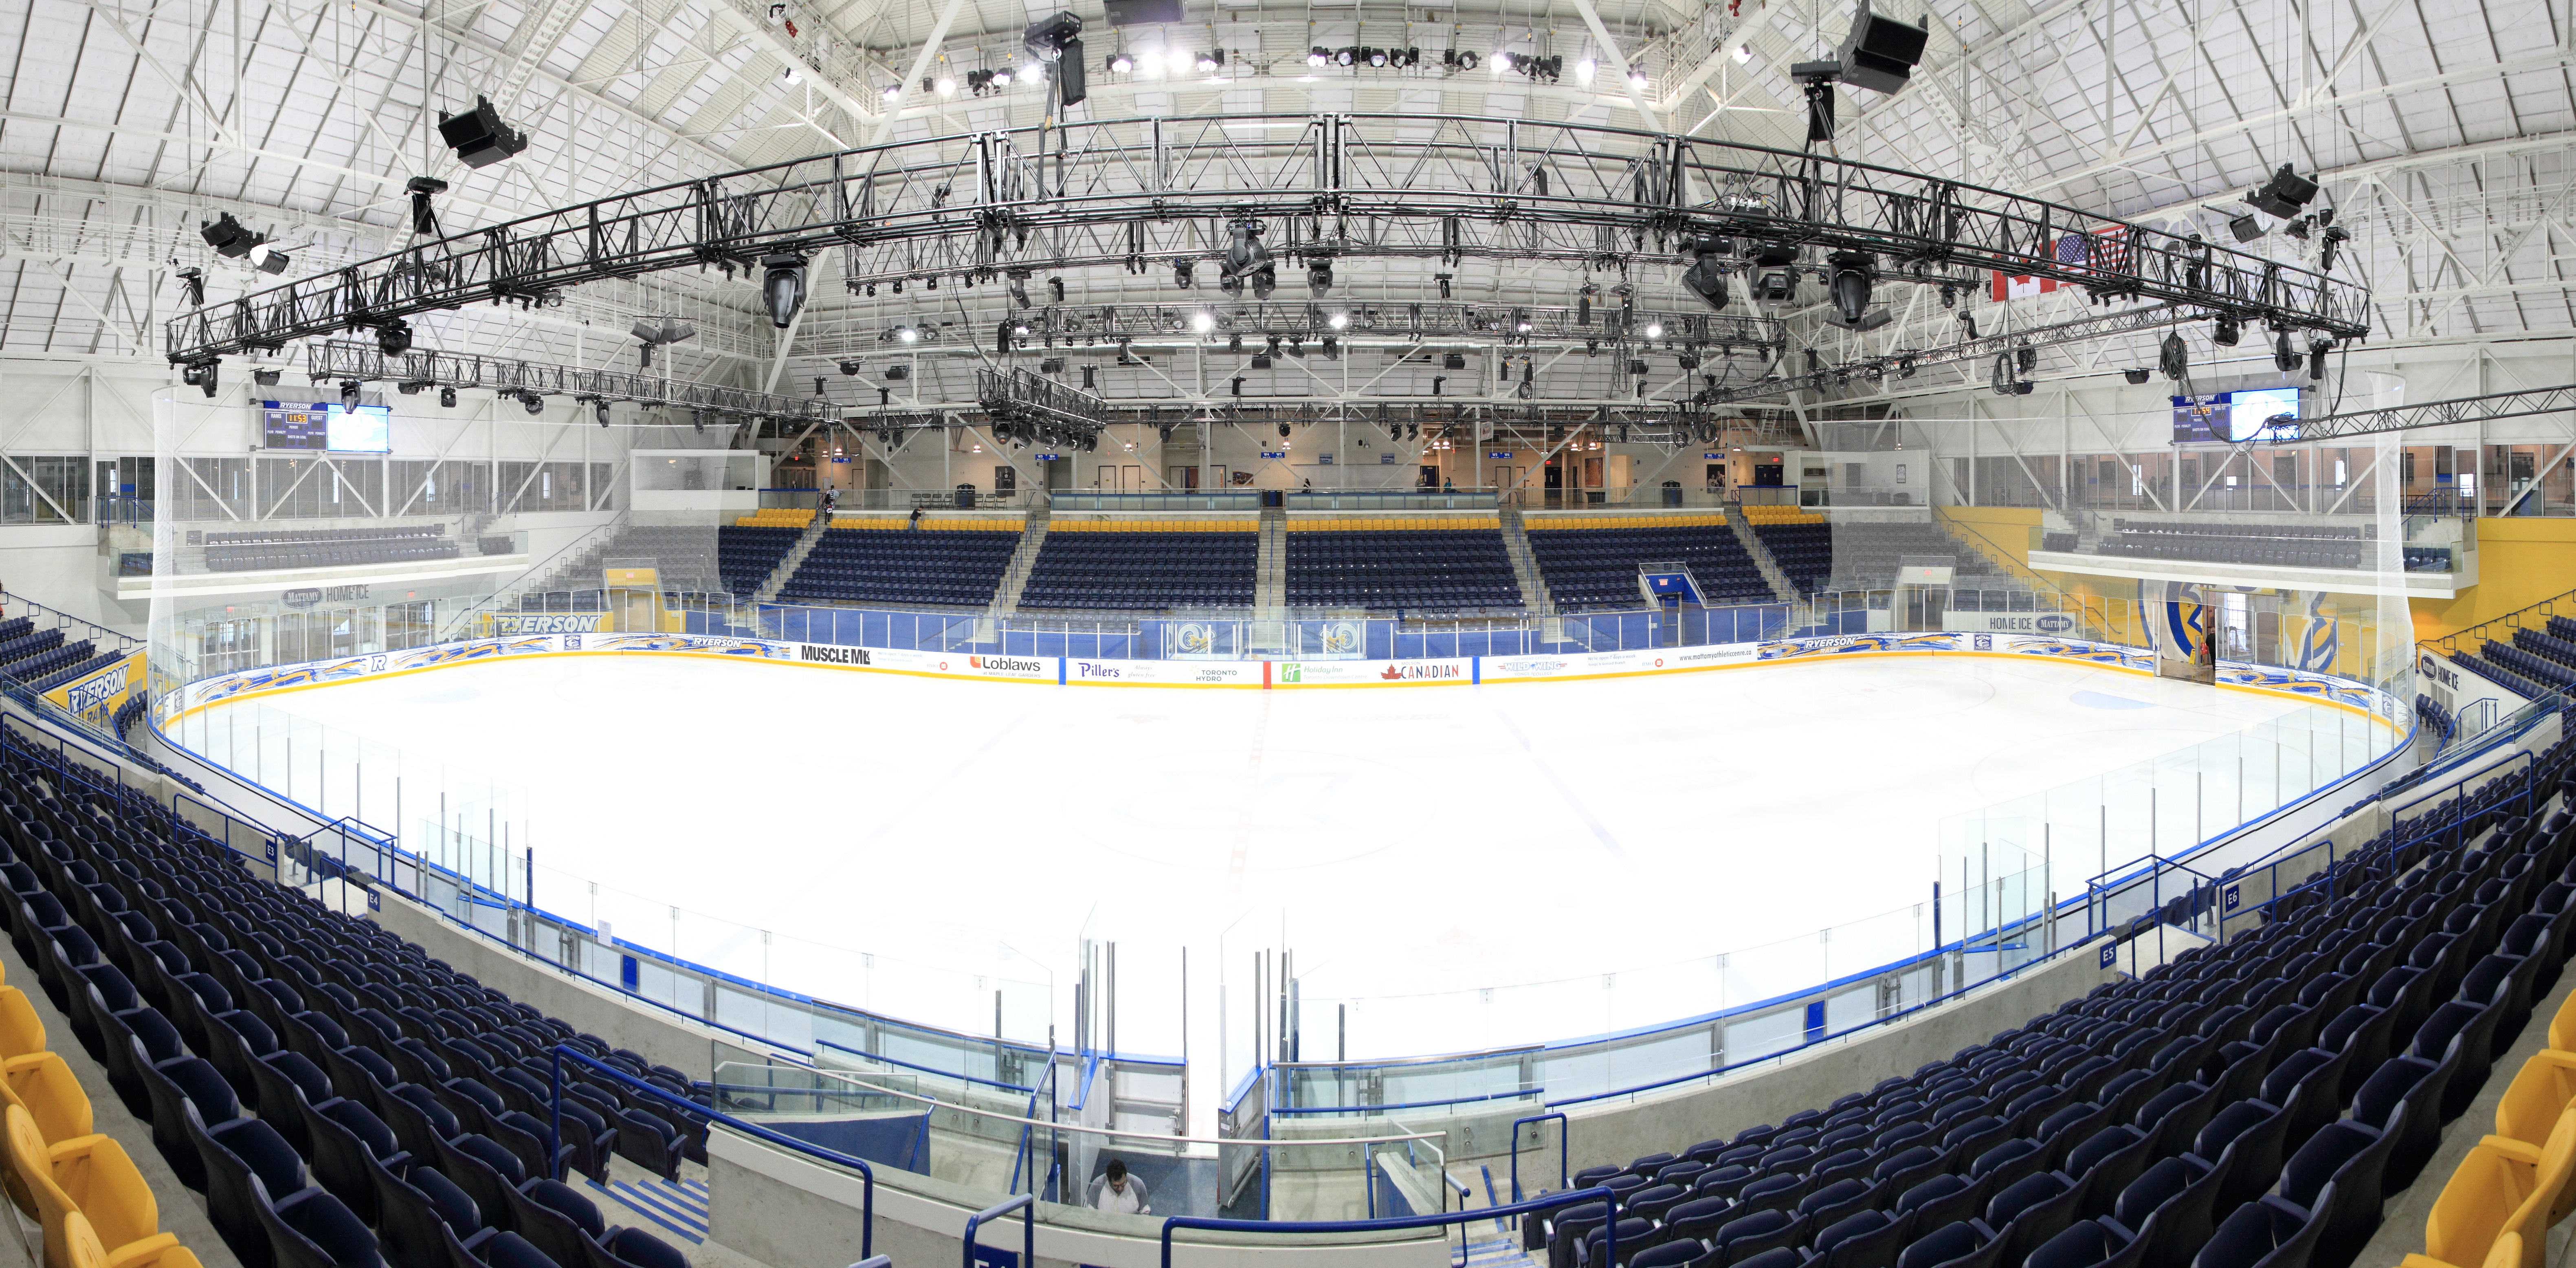 Maple Leaf Gardens Opening Night at Maple Leaf Gardens